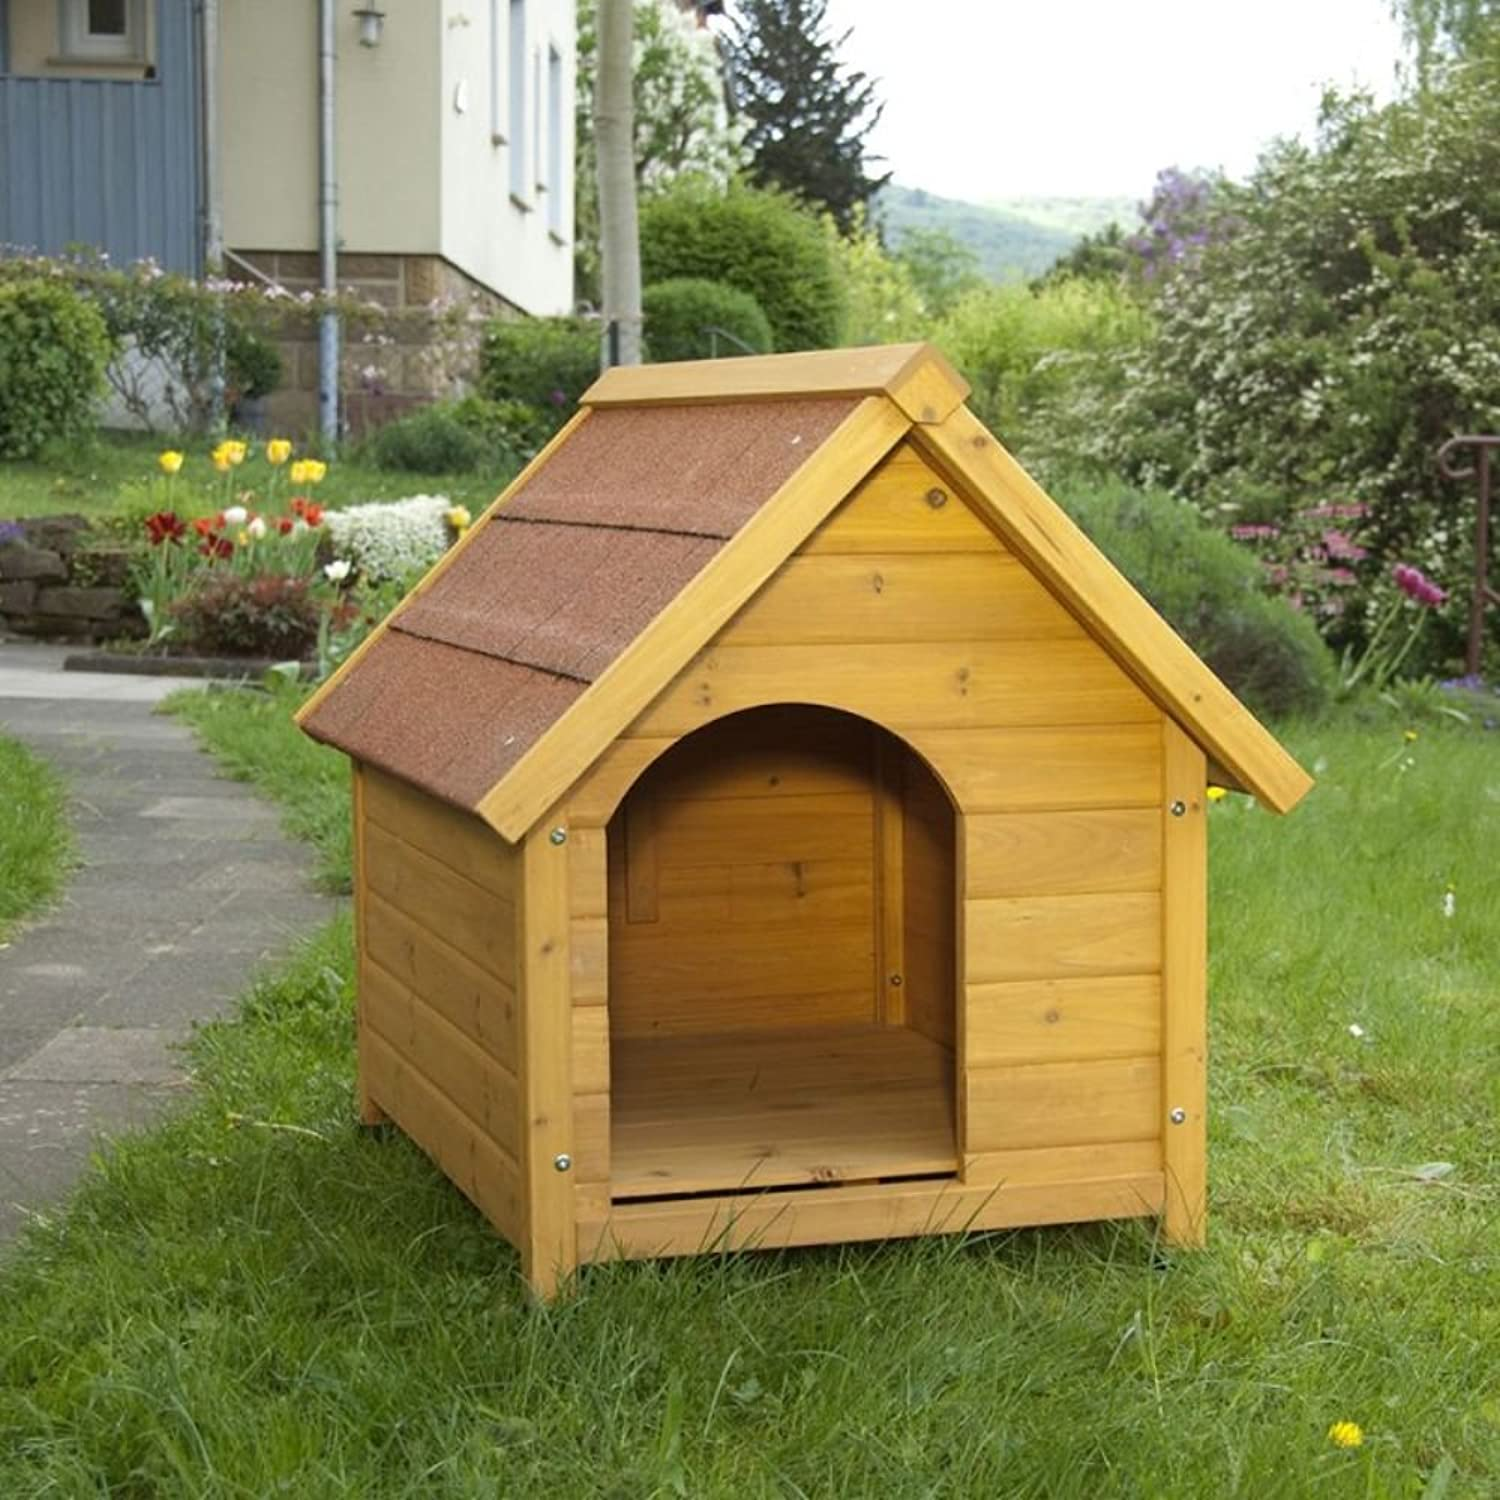 Attraente Wooden Dog Kenndel w / Side Entrsion Specially Coated Roof &Sealed Wood with a Wide Overhang Offering Protection from Adverse Weather Relations by eCommerce Excellence (XL)